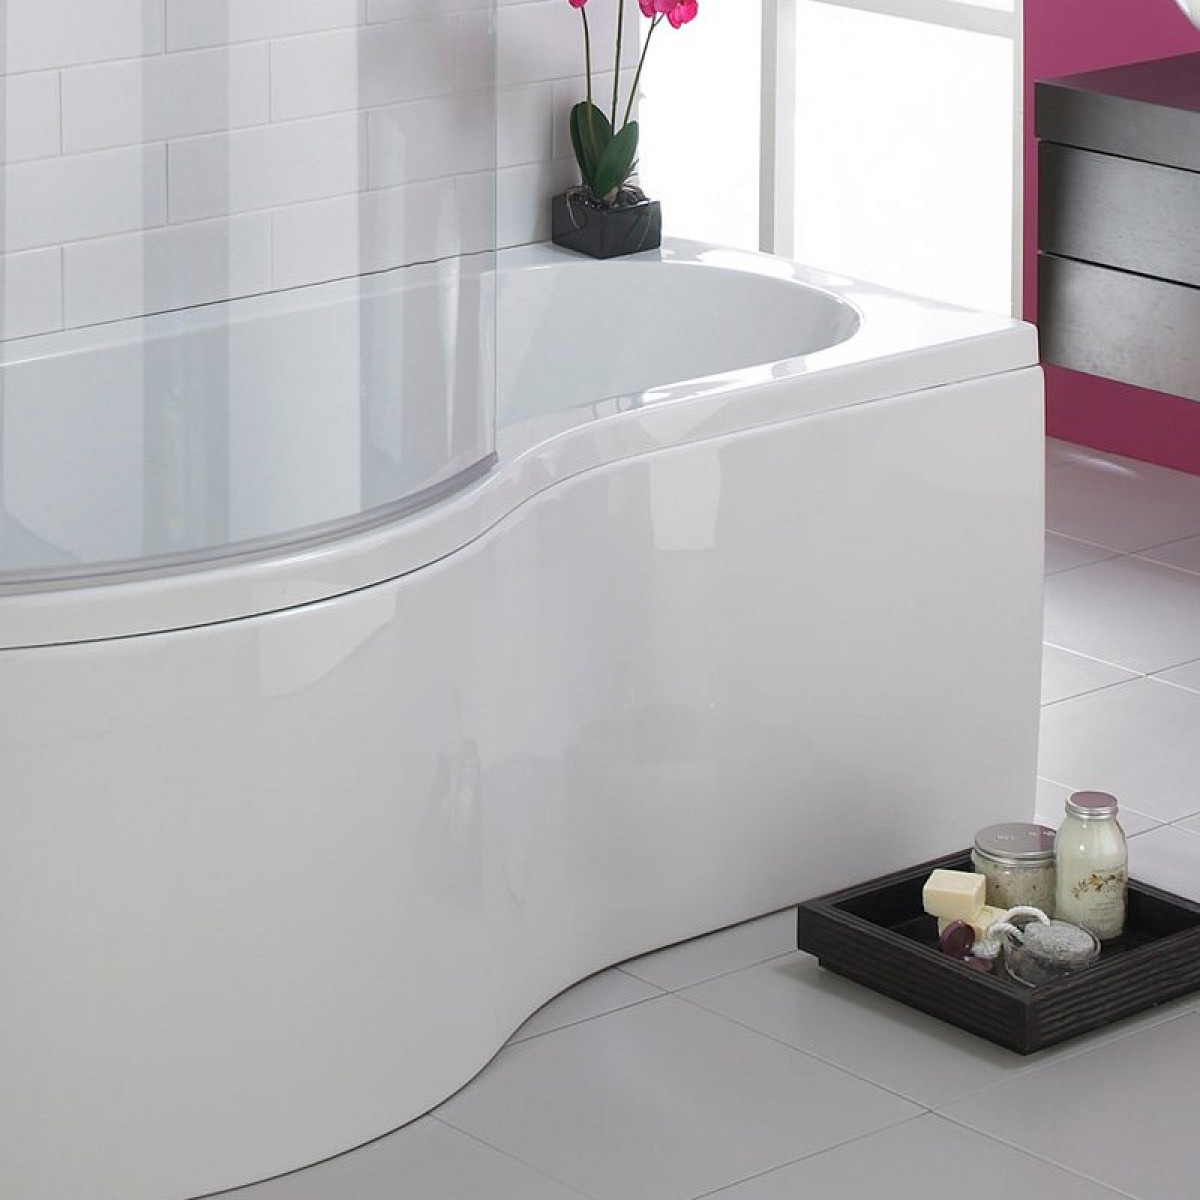 Essential Hampstead 1500mm P Shape Shower Bath Inc Bath